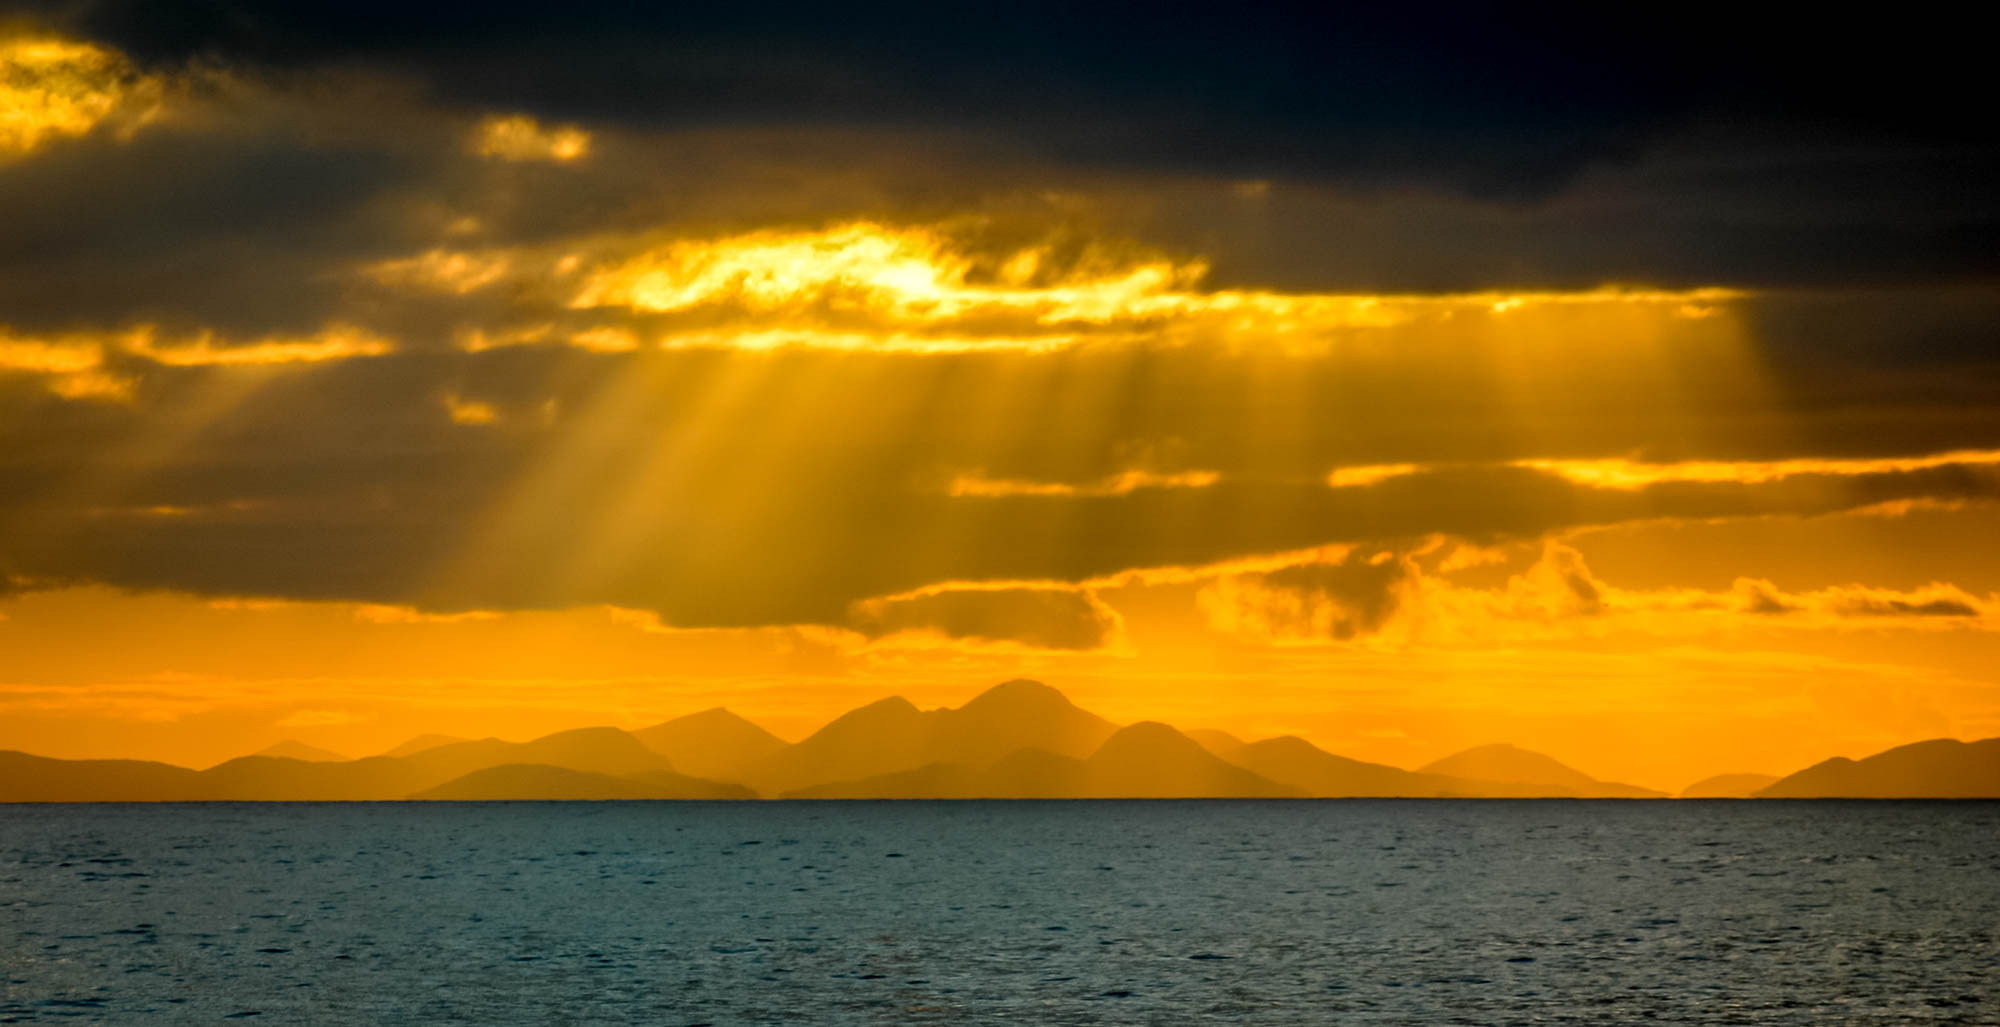 Looking to the Isle of Skye from Applecross at sunset